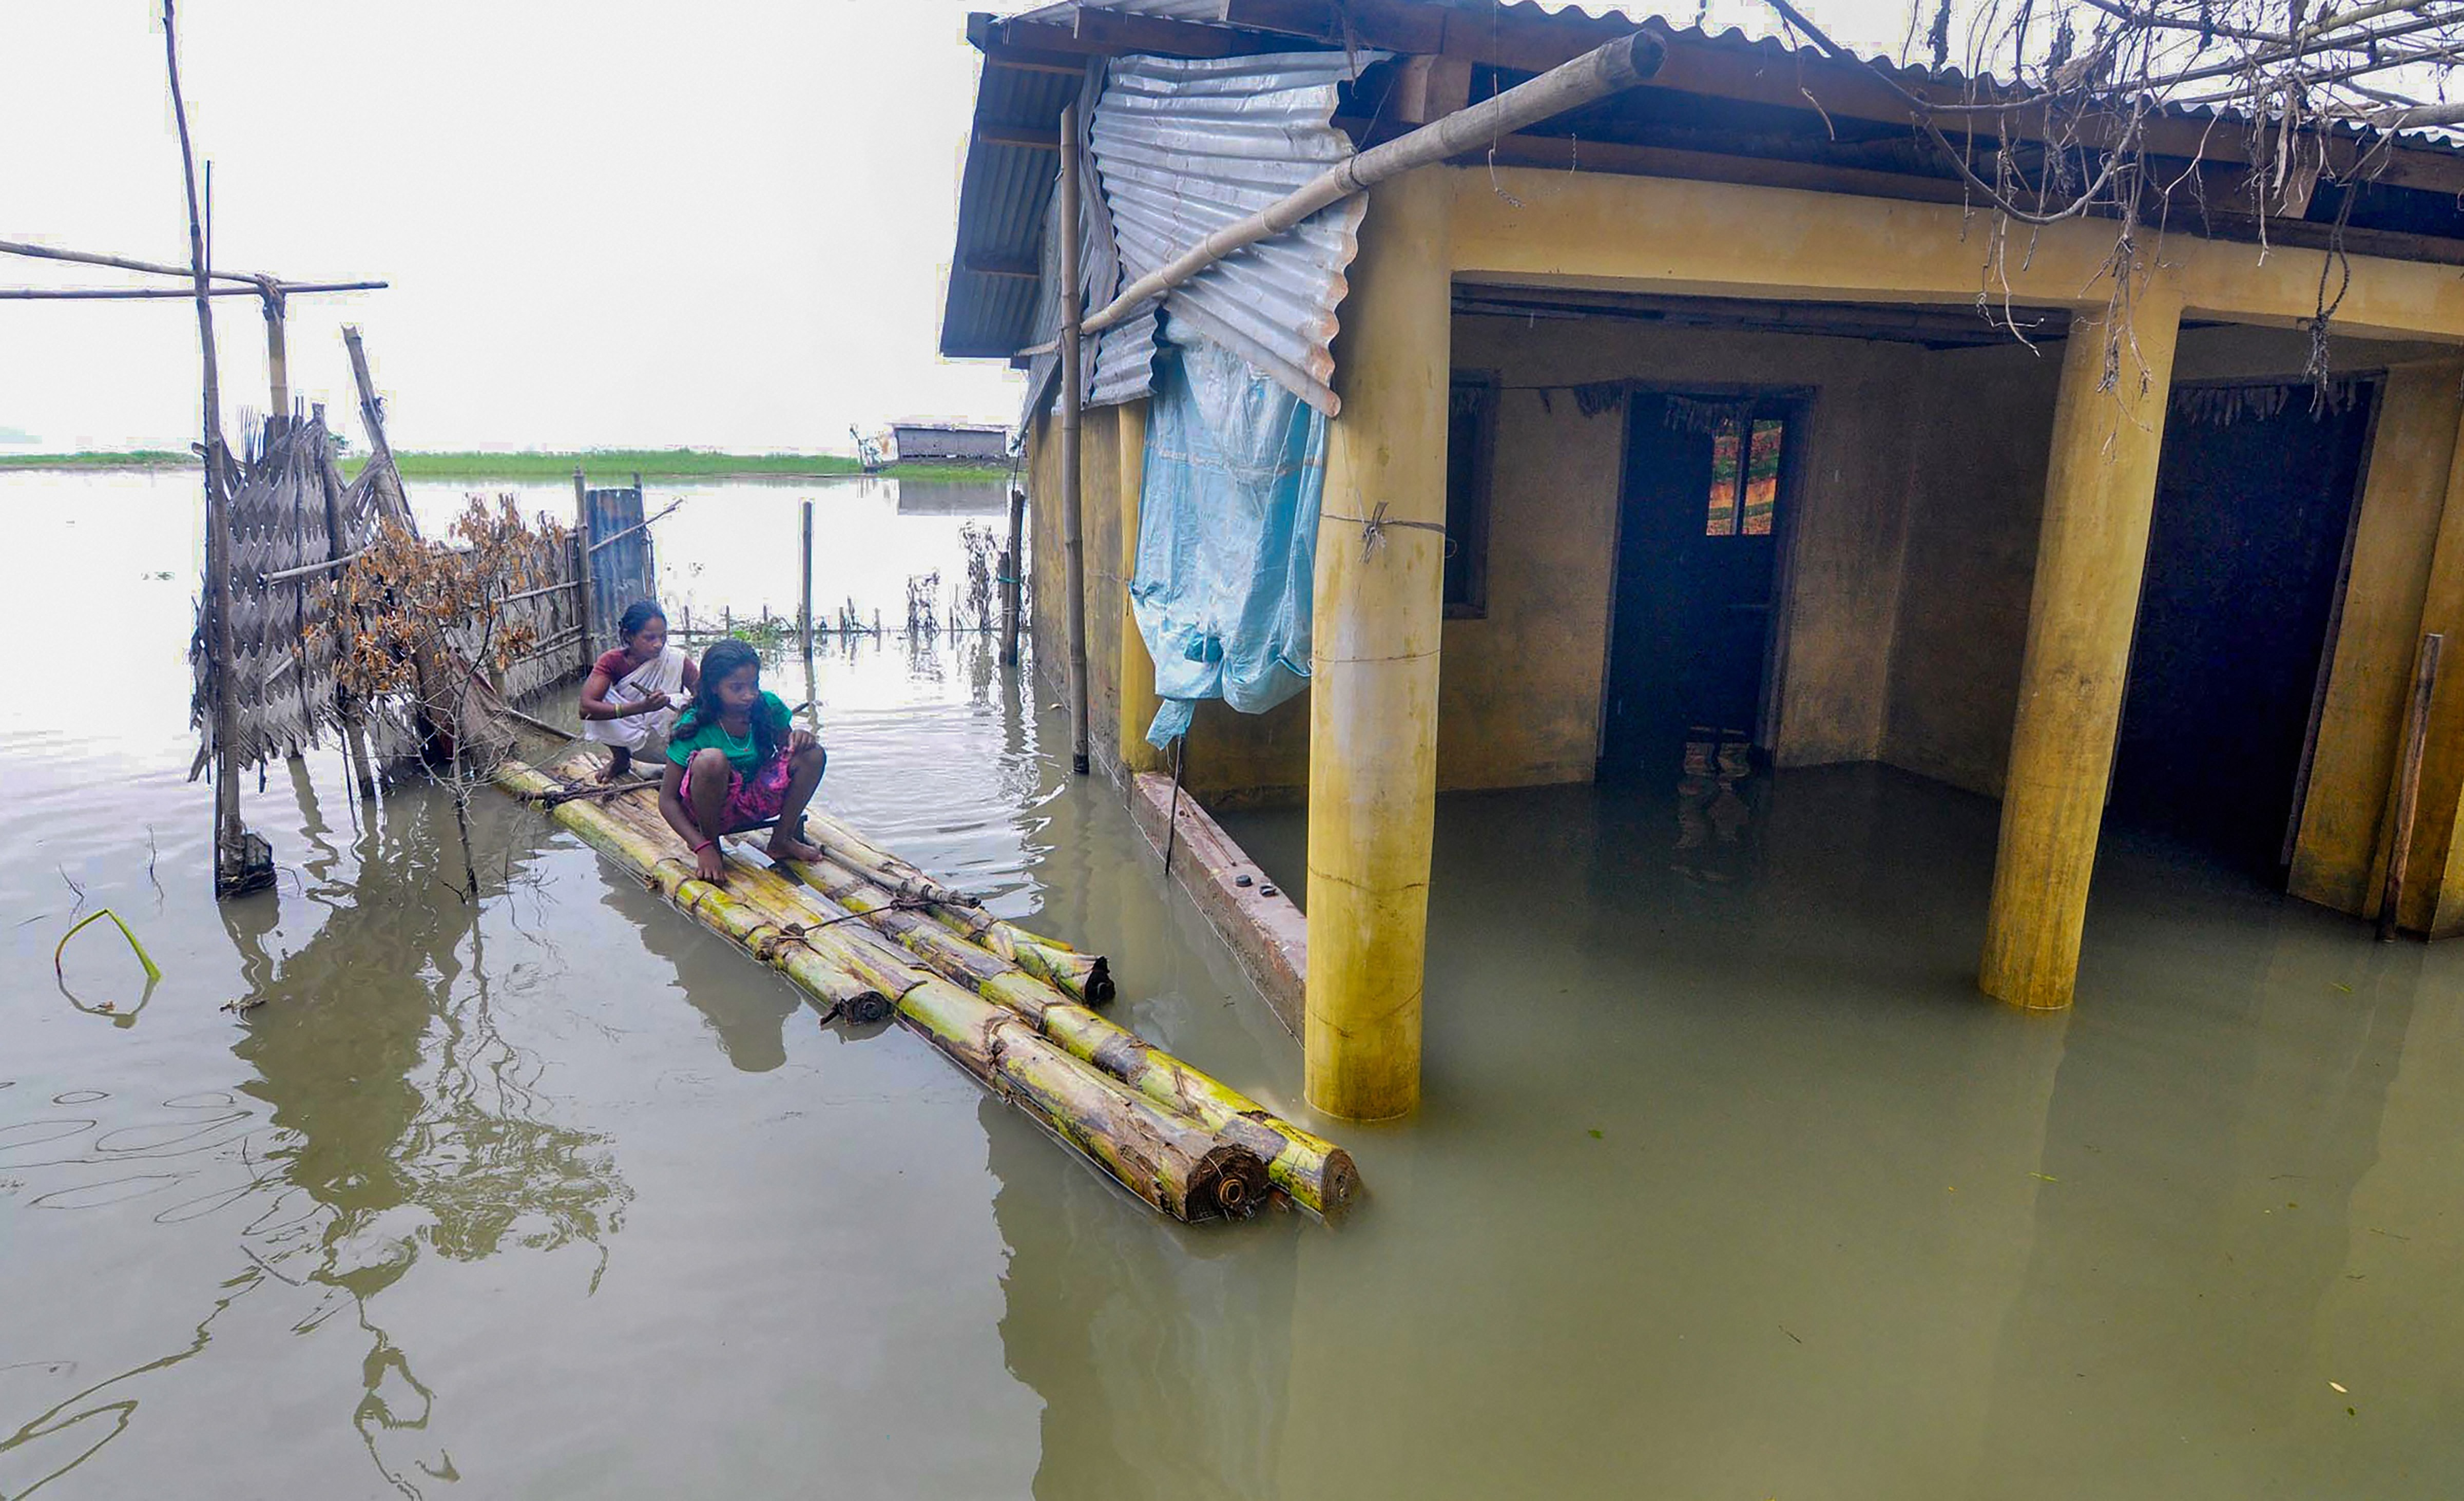 Kamrup: Flood affected villagers use a banana raft to move at Chandrapur in Kamrup district of Assam, Tuesday, July 21, 2020. (PTI Photo) (PTI21-07-2020_000053B)